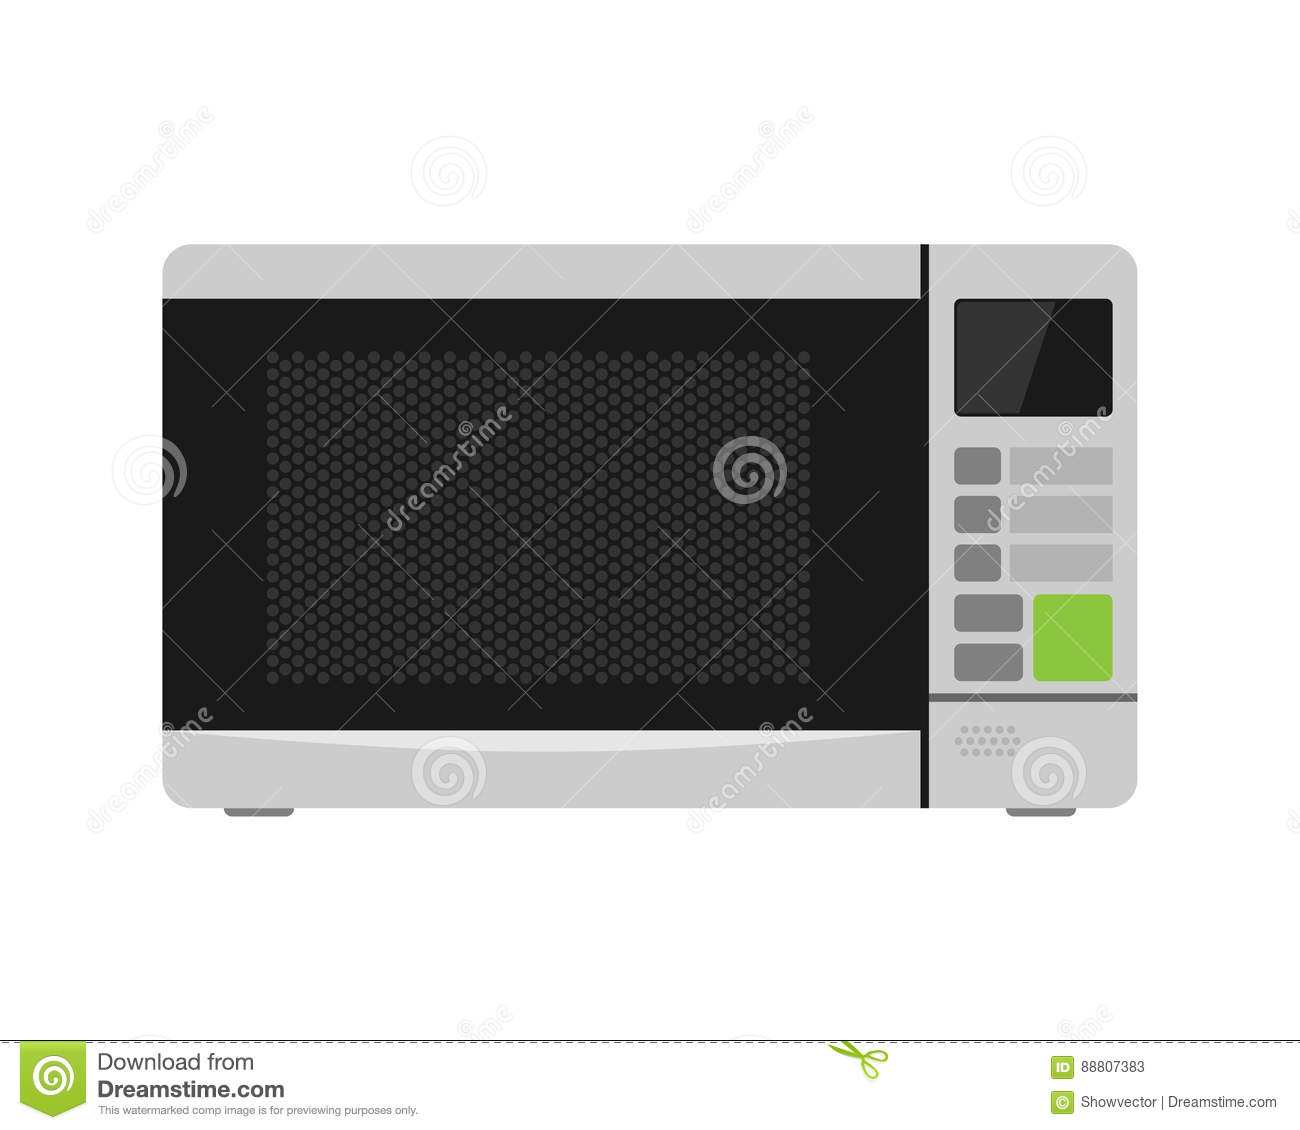 hight resolution of microwave oven equipment vector illustration kitchenware appliance hot symbol electric tool and domestic electrical cooking stove household technology